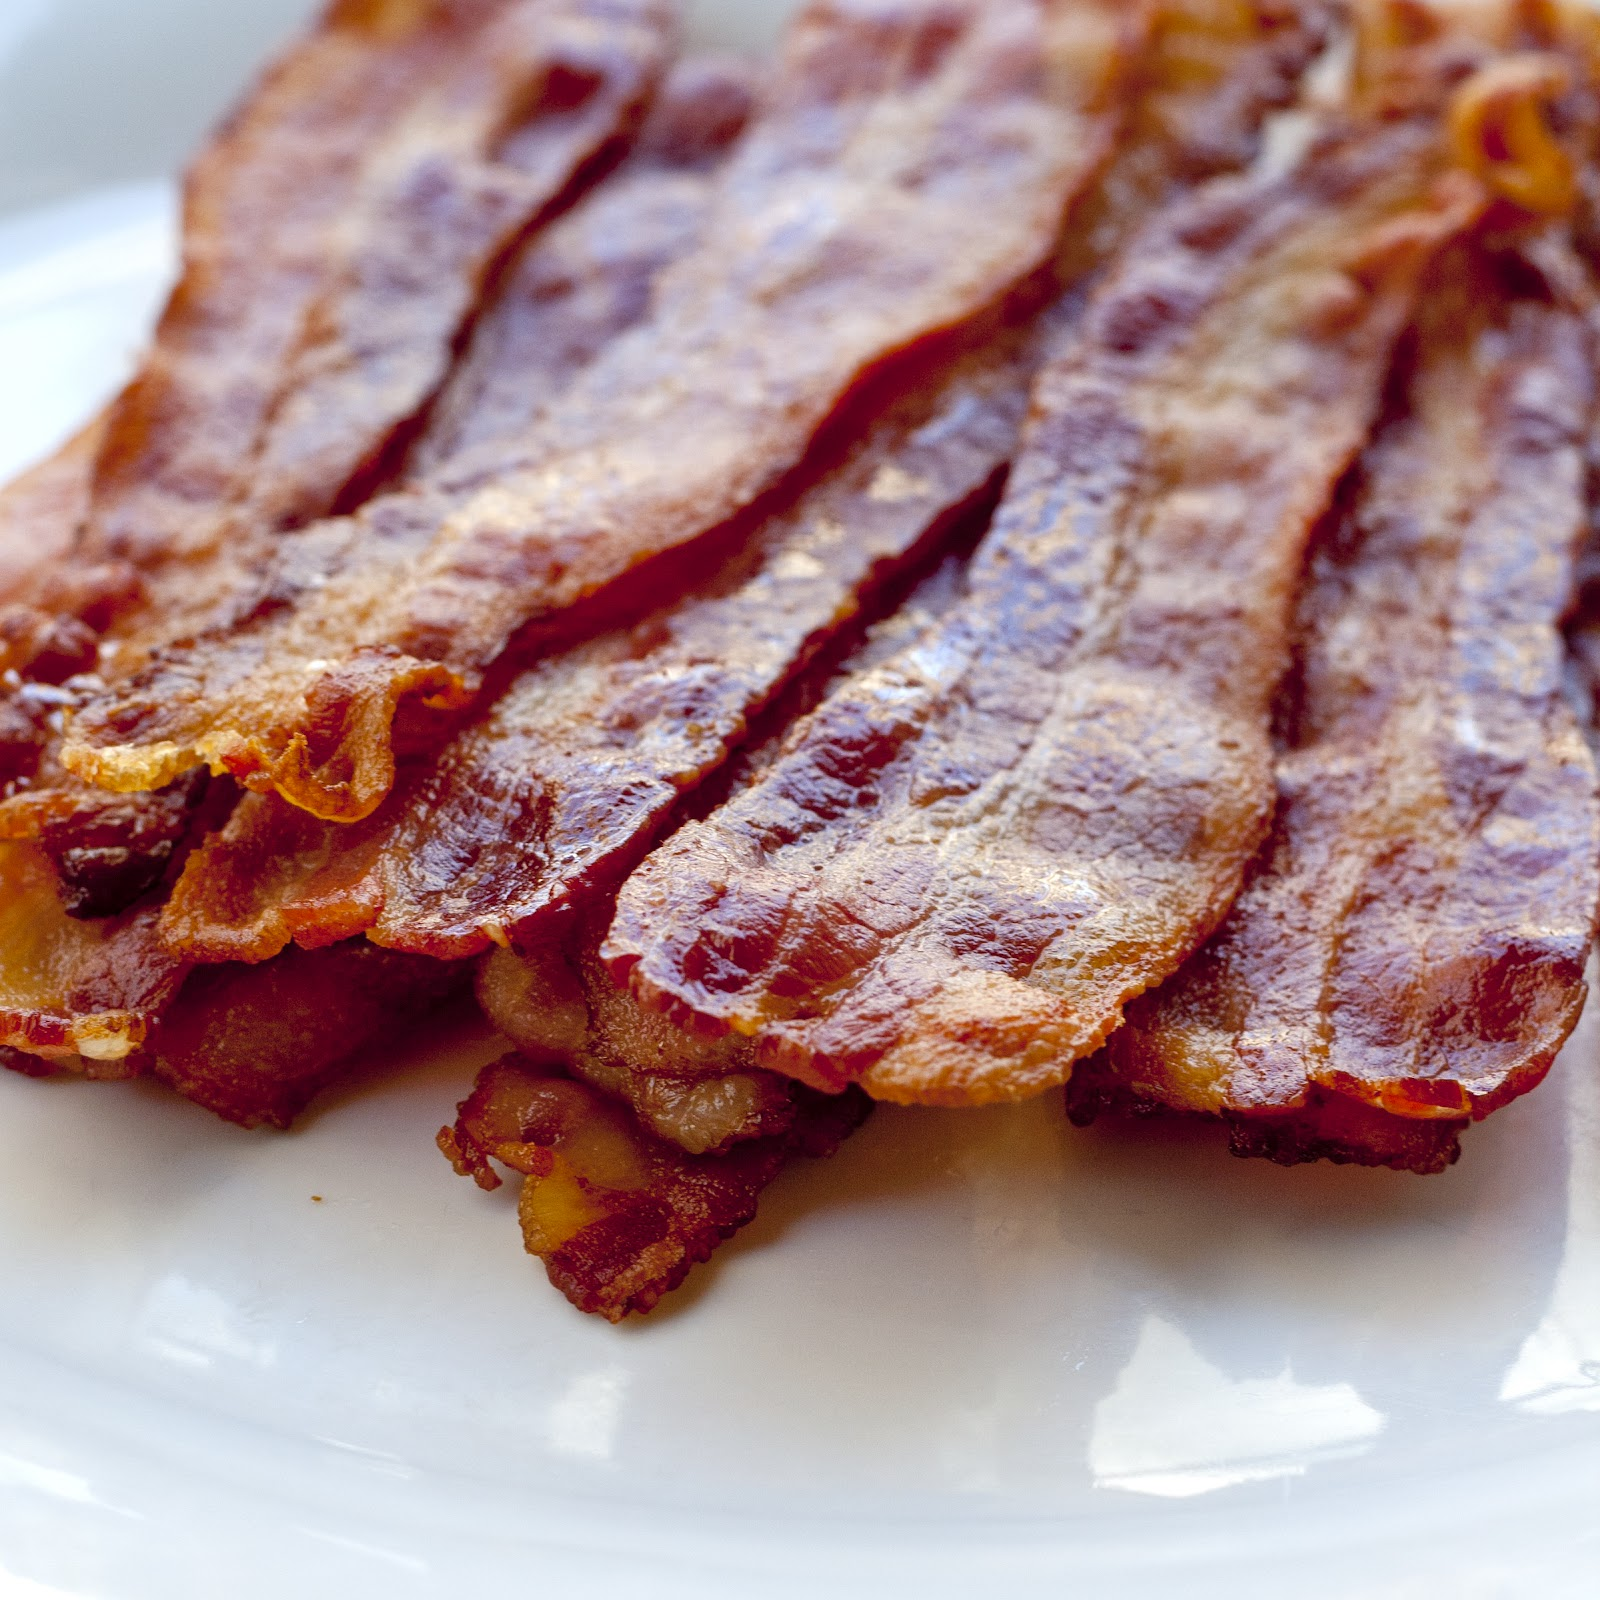 Tip: How To Cook Bacon, The Easy Way